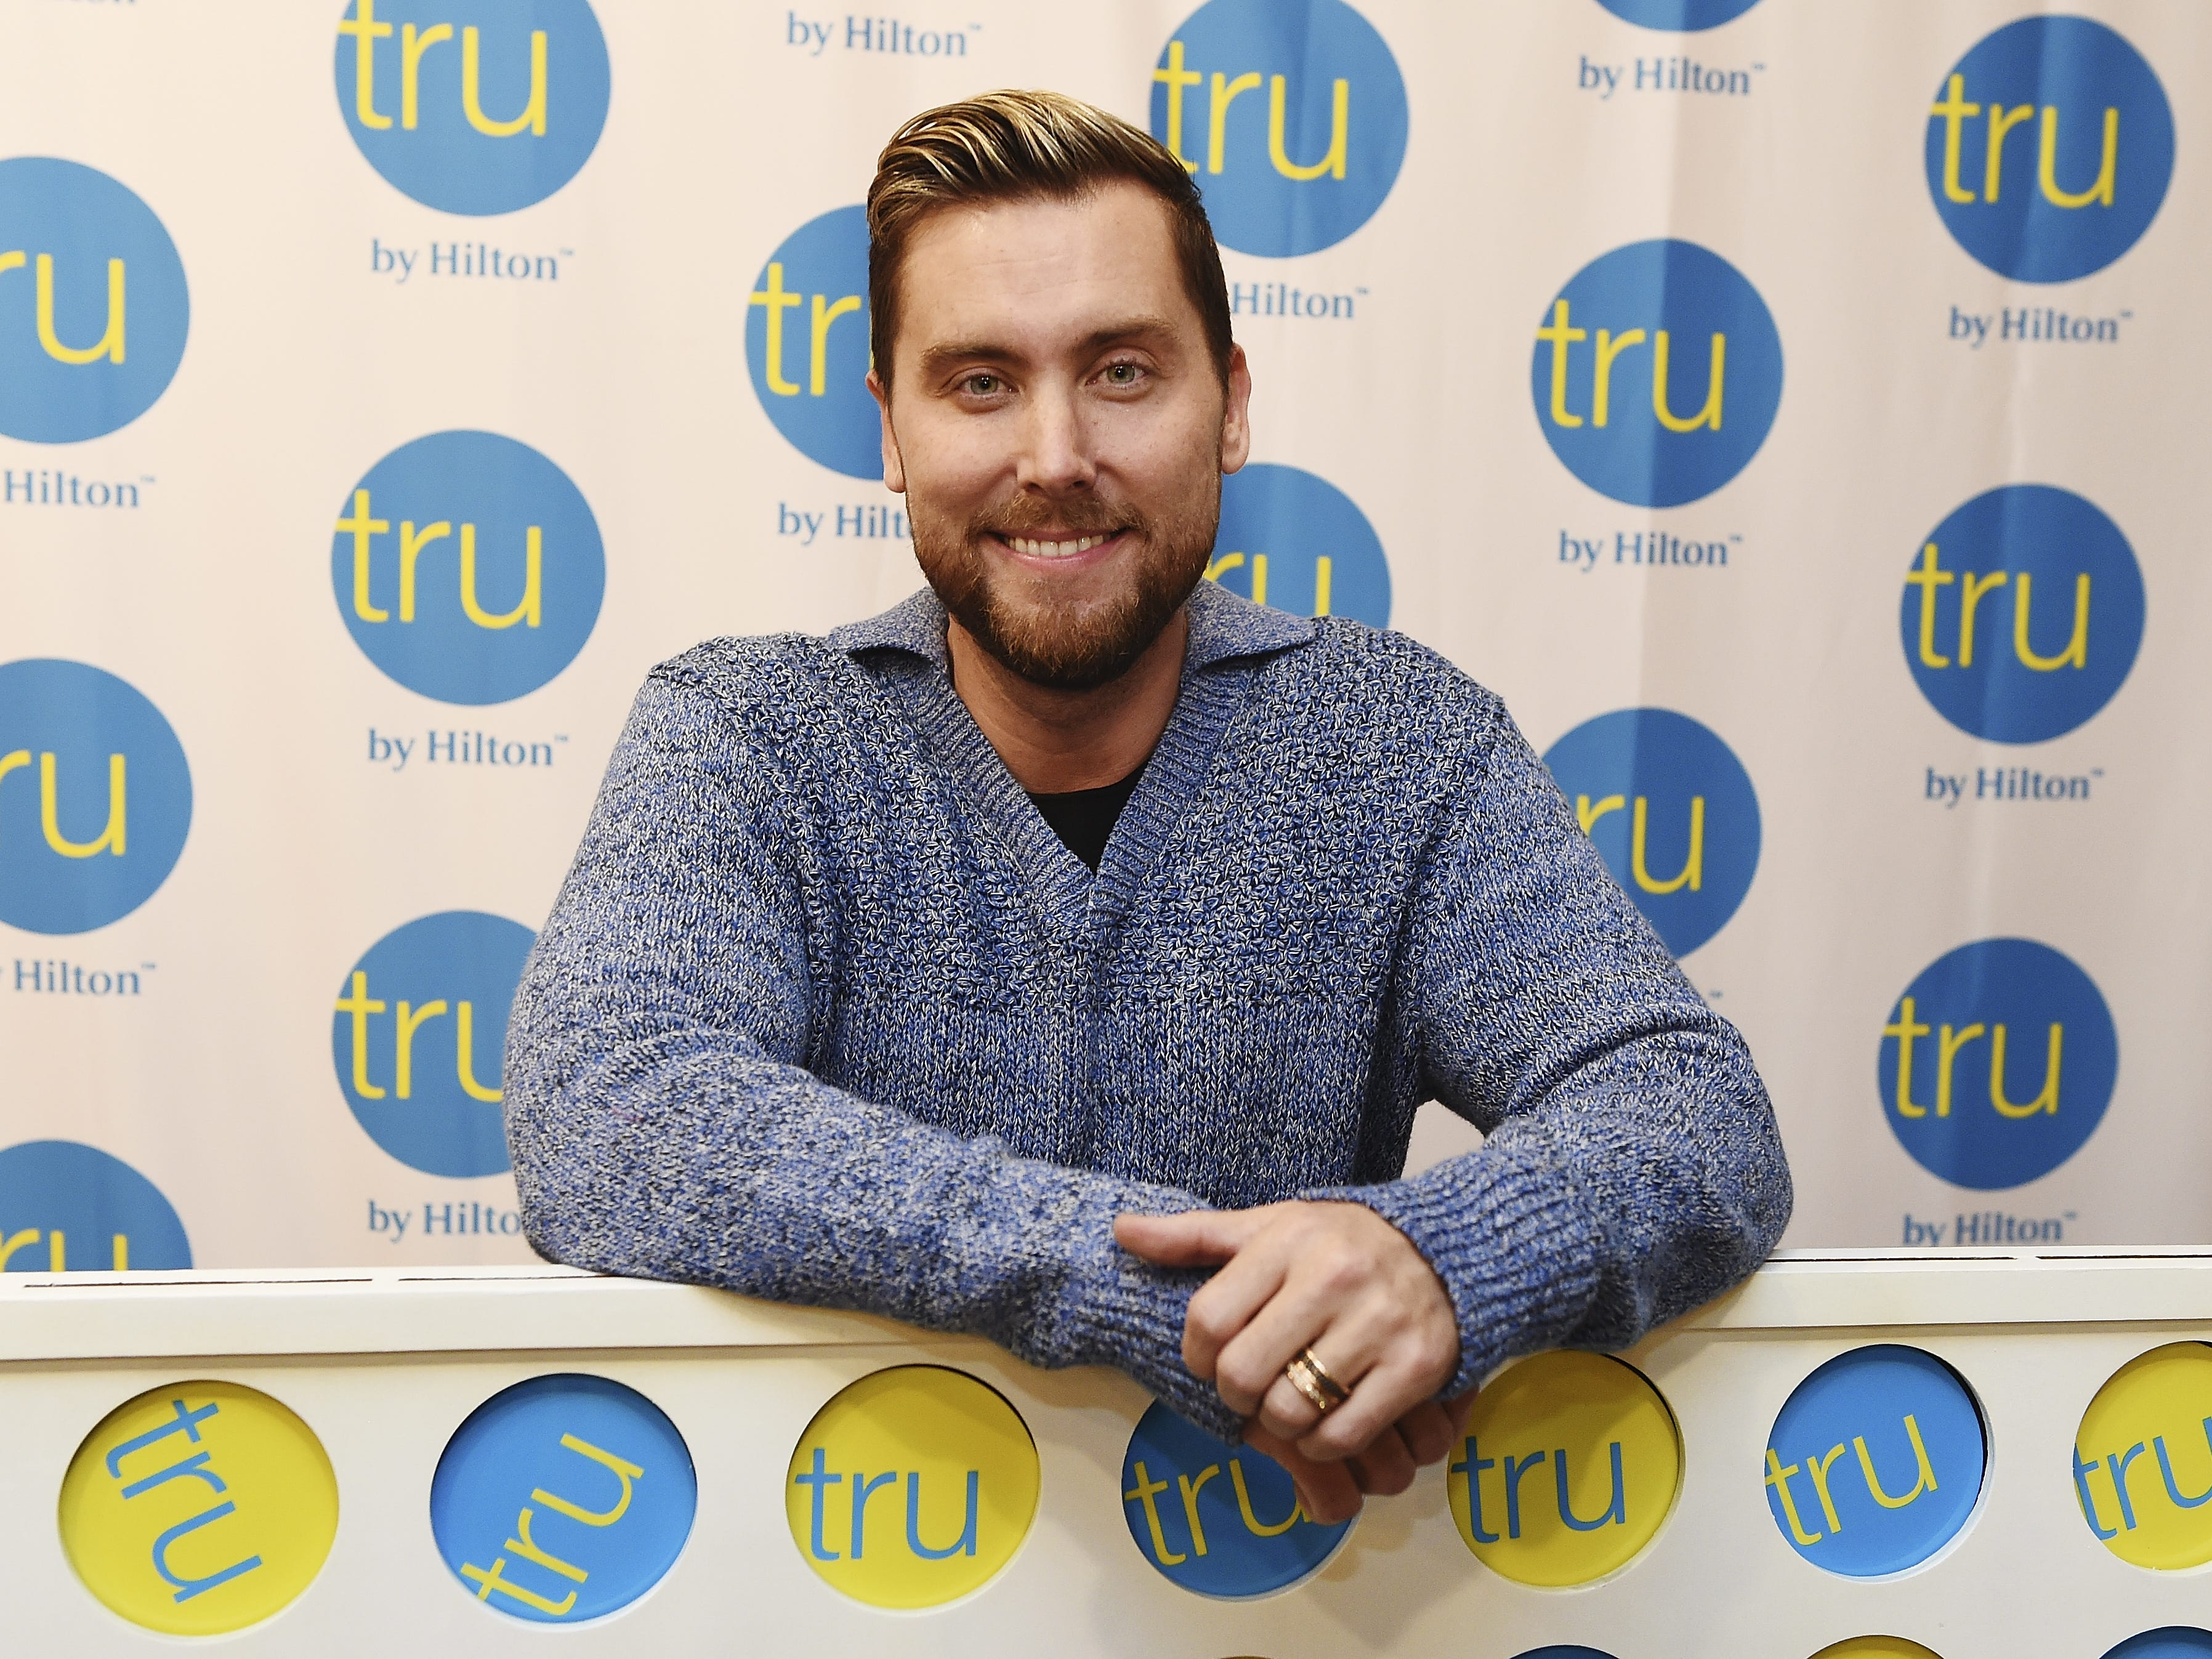 SALT LAKE CITY, UTAH - NOVEMBER 29: *NSYNC member Lance Bass hosts the Tru Connections event, celebrating Tru by Hiltons rapid growth to 50 open hotels with a giant CONNECT 4® tournament at Tru by Hilton Salt Lake City Airport on November 29, 2018 in Salt Lake City, Utah. (Photo by Fred Hayes/Getty Images for Tru by Hilton) ORG XMIT: 775264320 ORIG FILE ID: 1074737806